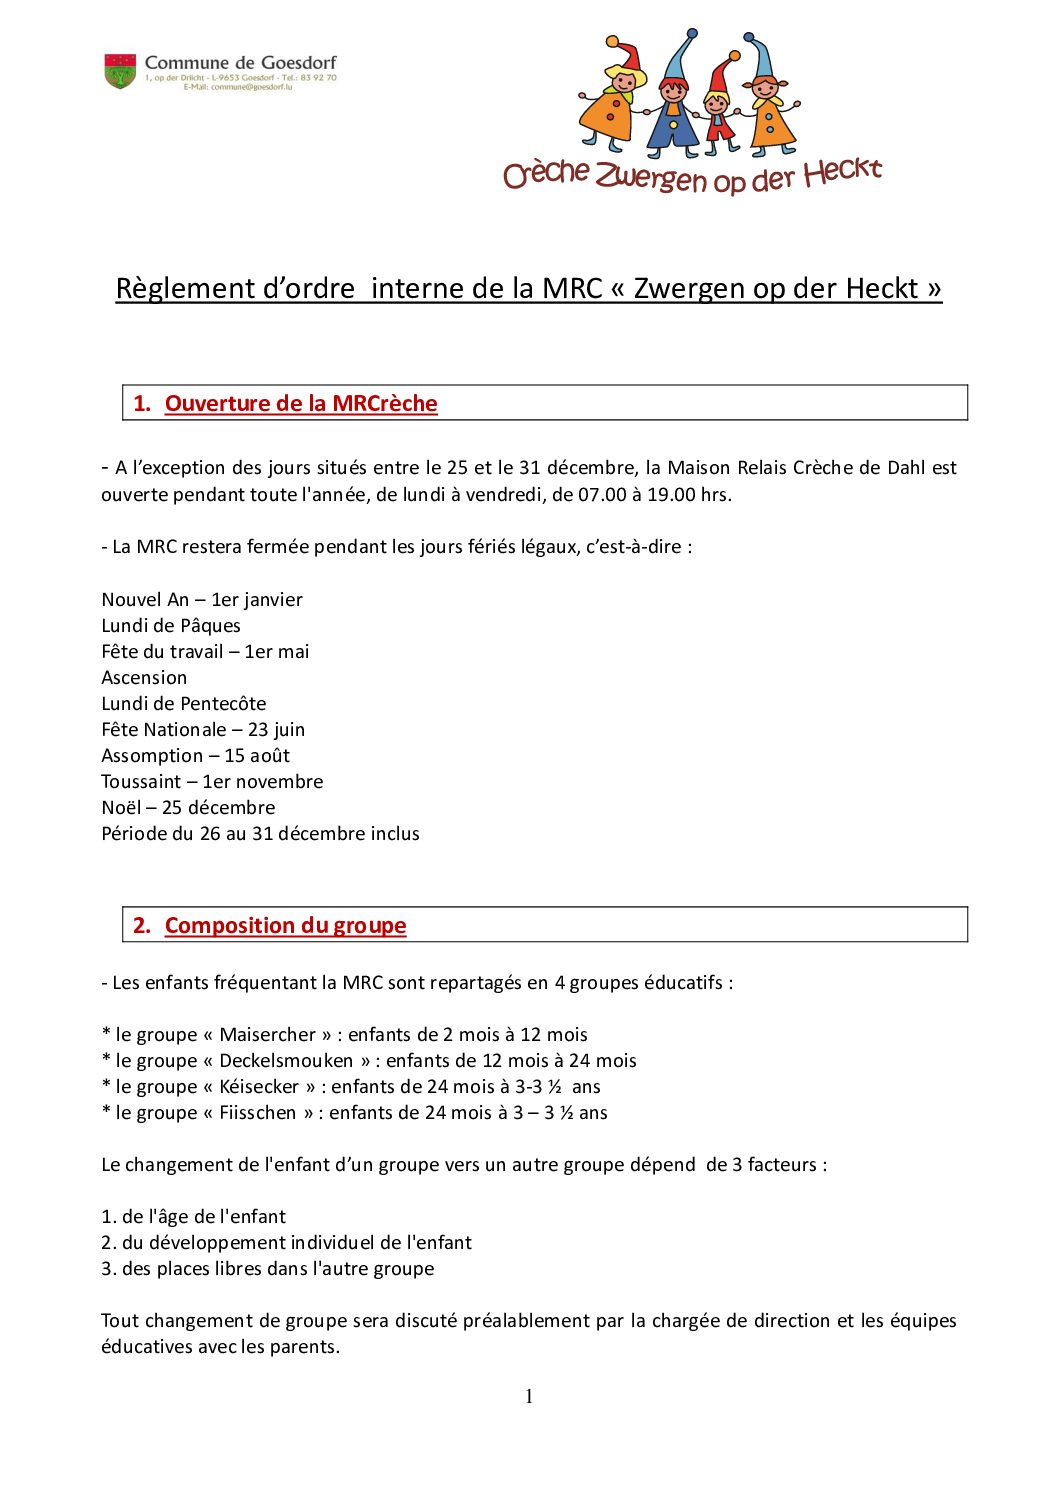 Reglement-interne-de-la-MRC-pour-les-parents-version-francaise-22.02.2016